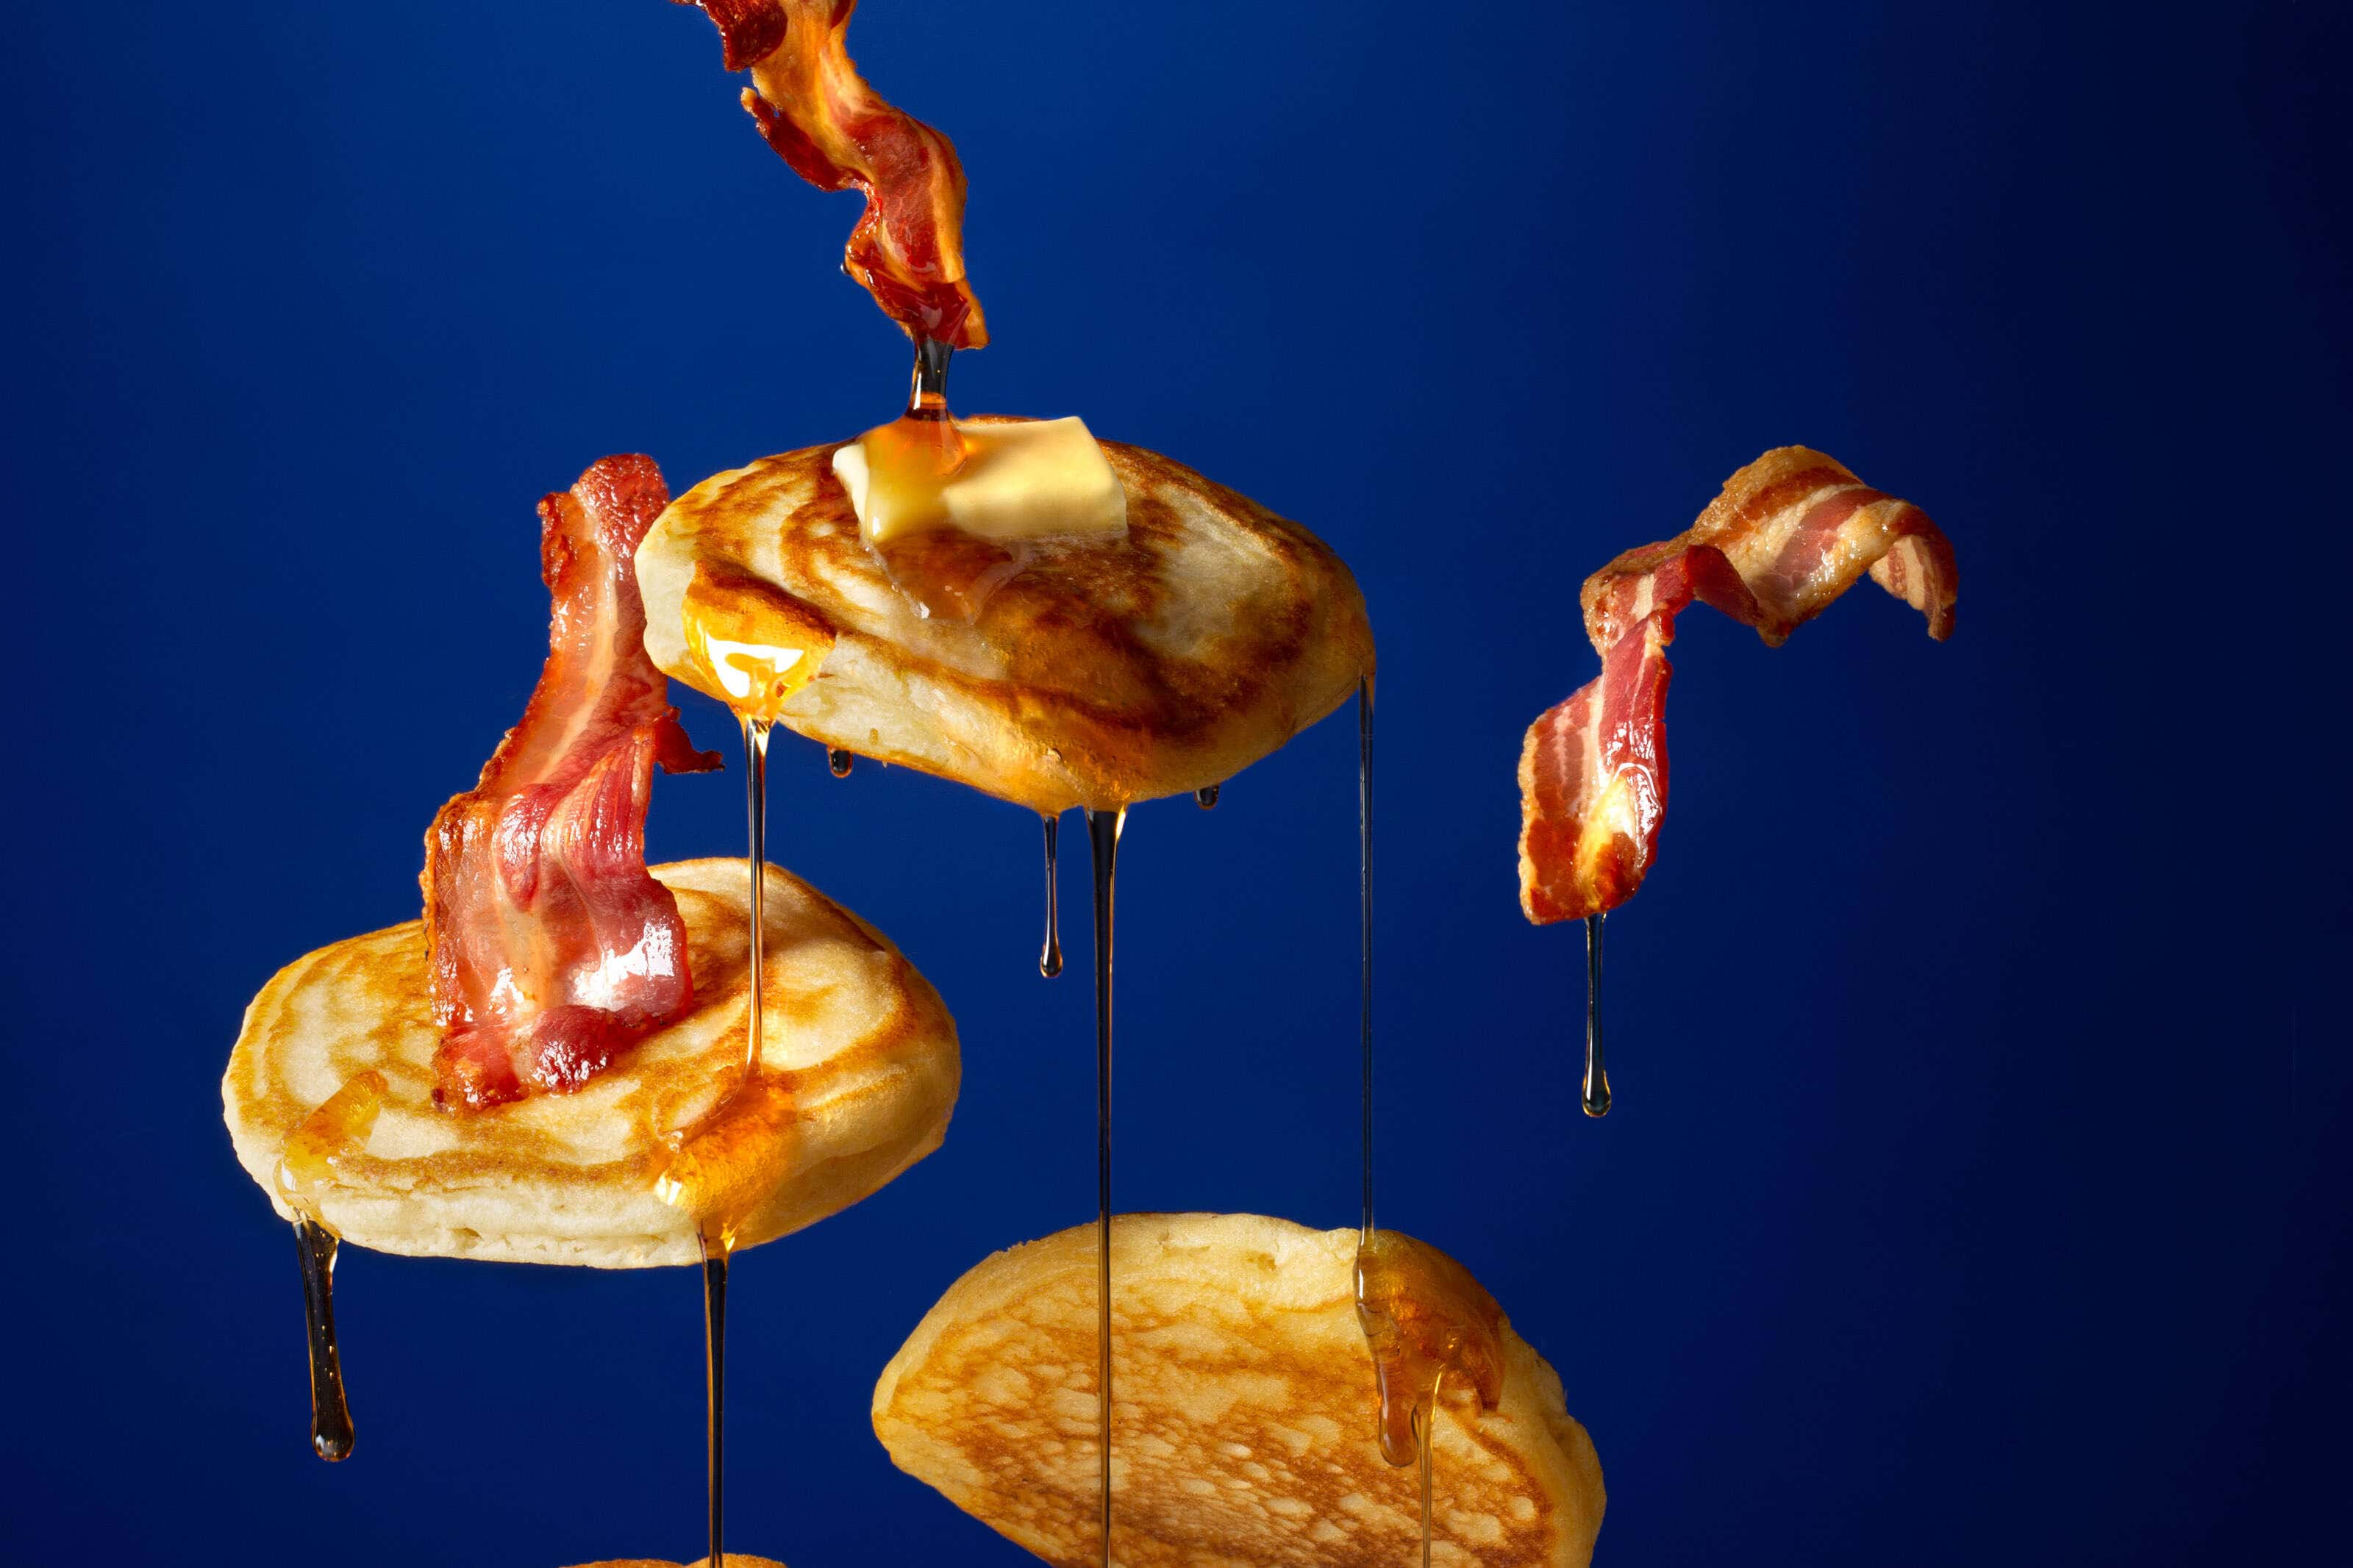 flying-pancake-with syrup dripping off them and melted butter